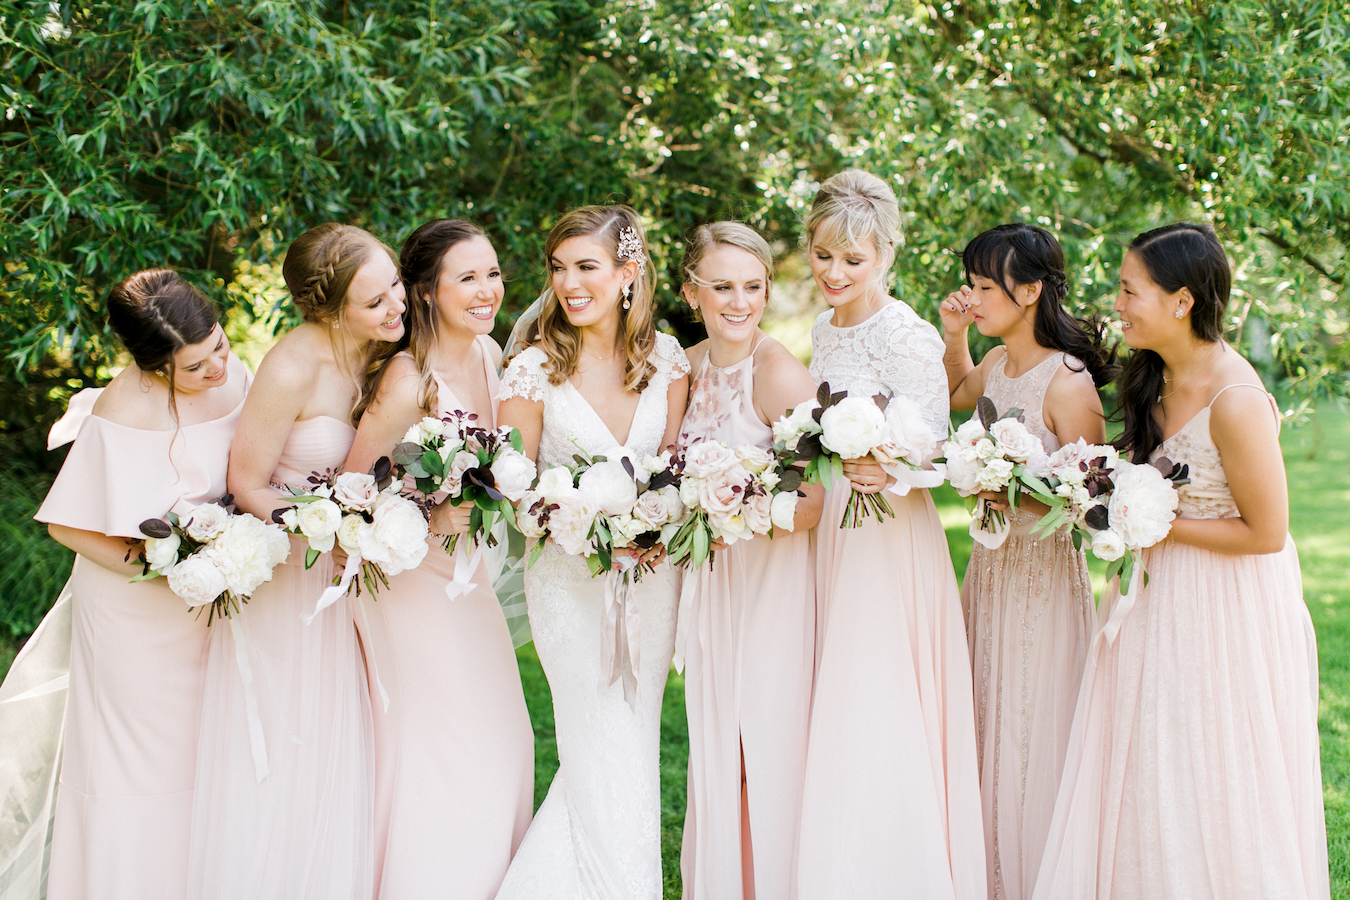 A bride and her bridesmaids smiling